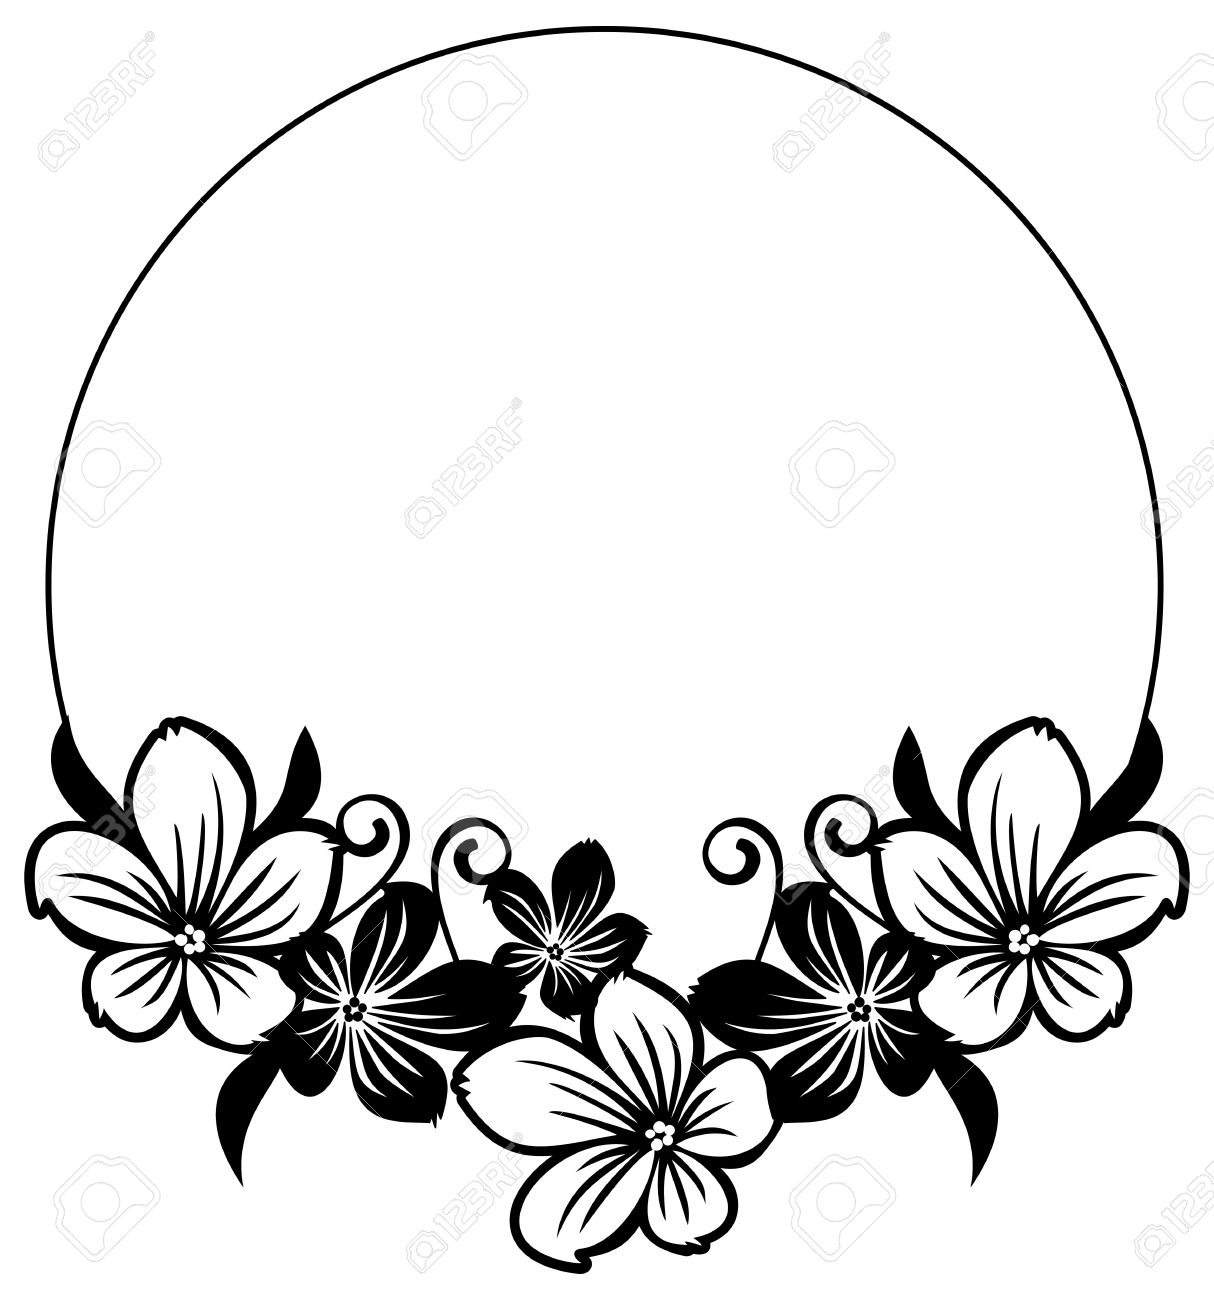 black and white round frame with abstract flowers silhouettes rh 123rf com flower clipart black and white flower clipart black and white vector